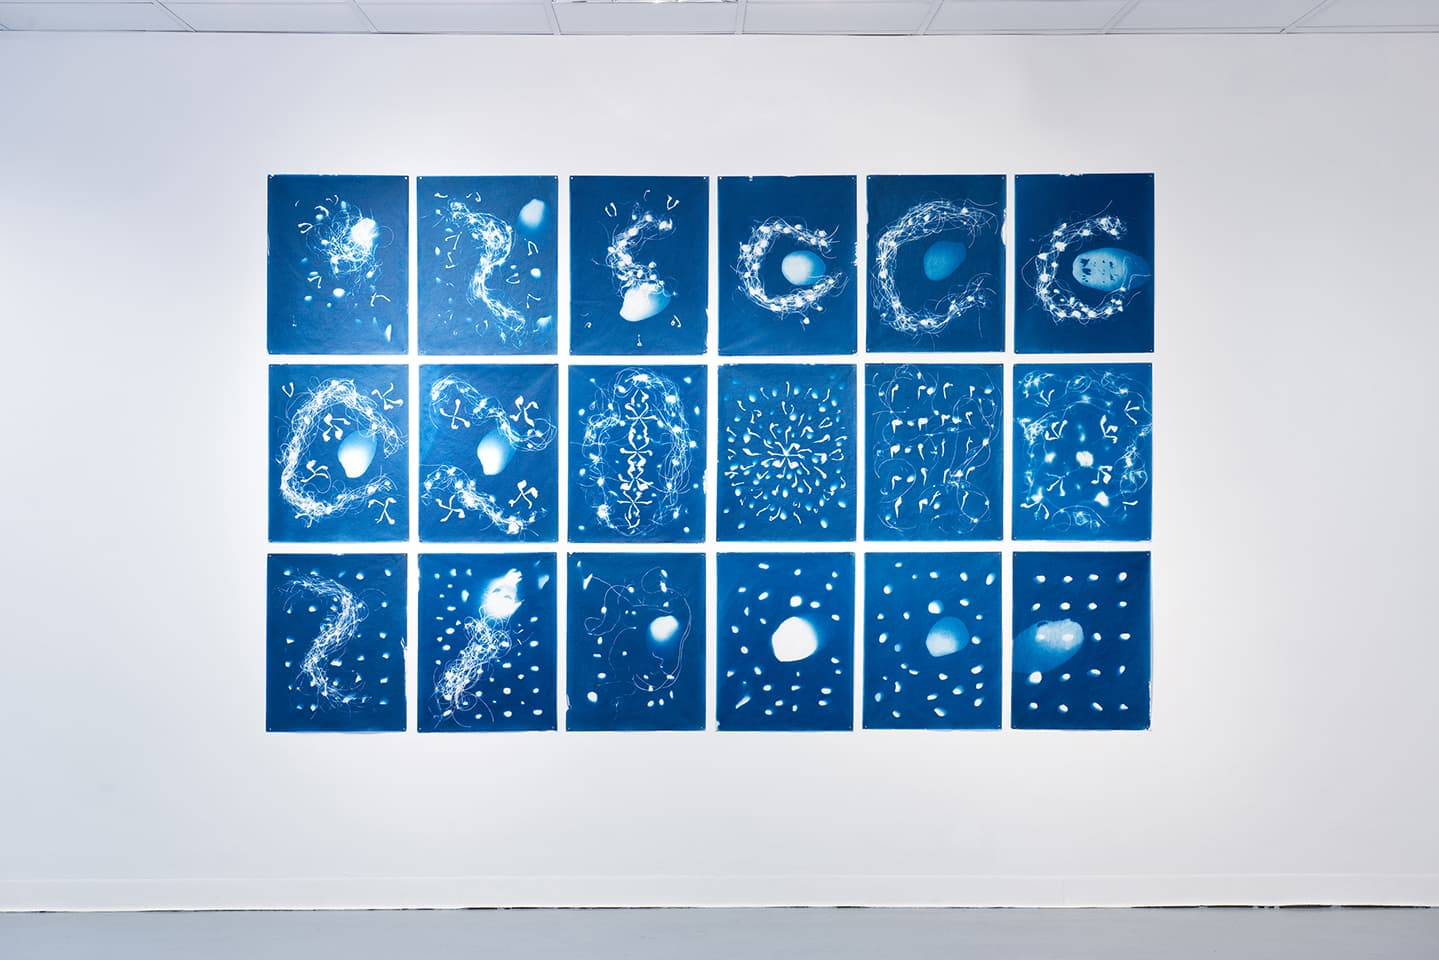 <strong>Out of the Blue</strong>, installation of 18 cyanotypes, Susan Aldworth, 1.77 x 2.82 metres, 2020. Photograph by Colin Davison at Vane.